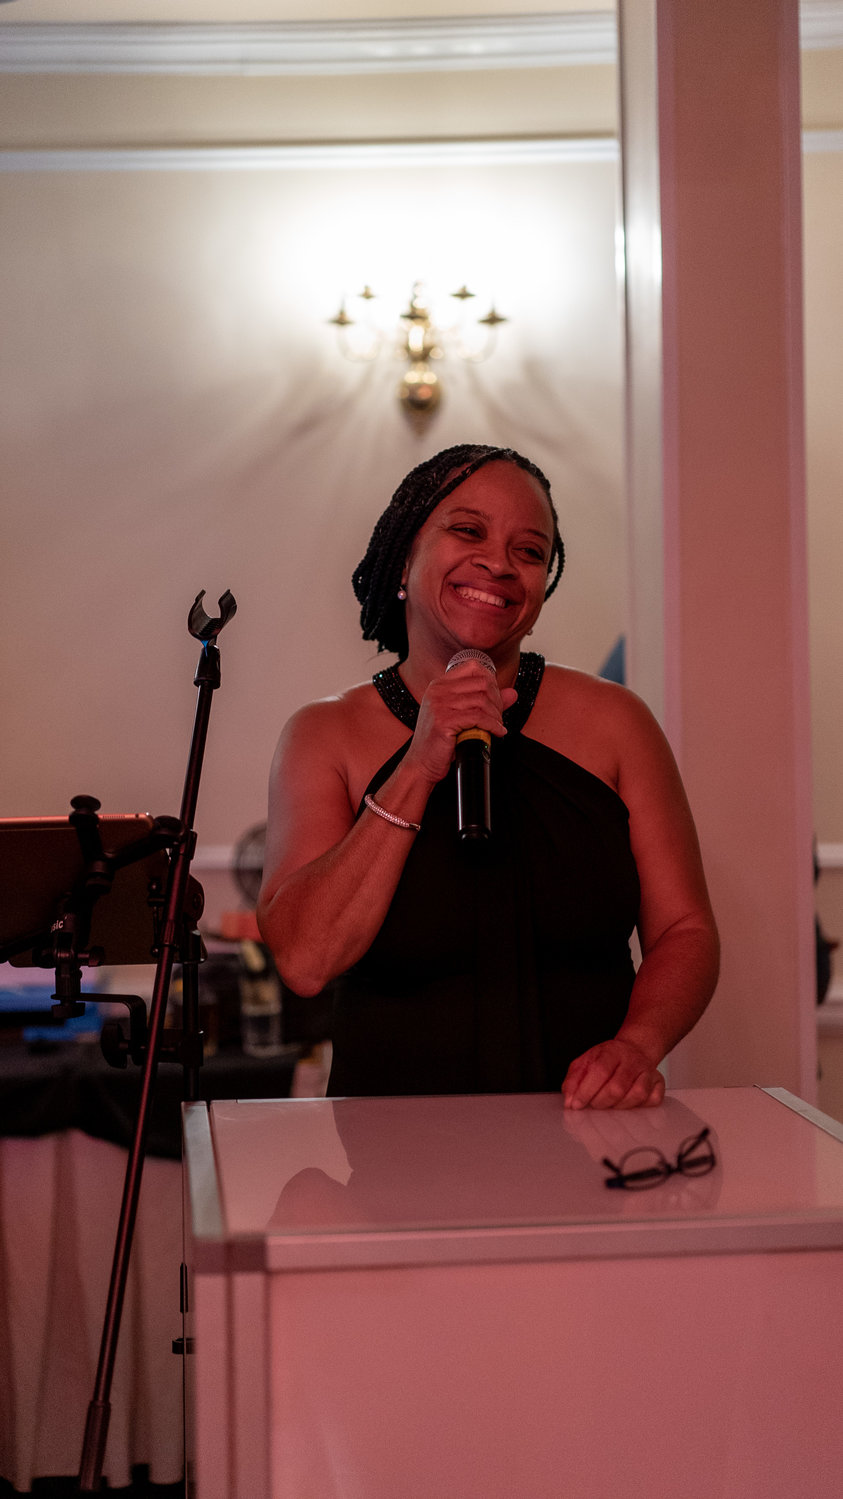 Williams, executive director and founder of 3D's Aftercare Inc., hosted the gala to honor the people who go unnoticed serving the community.